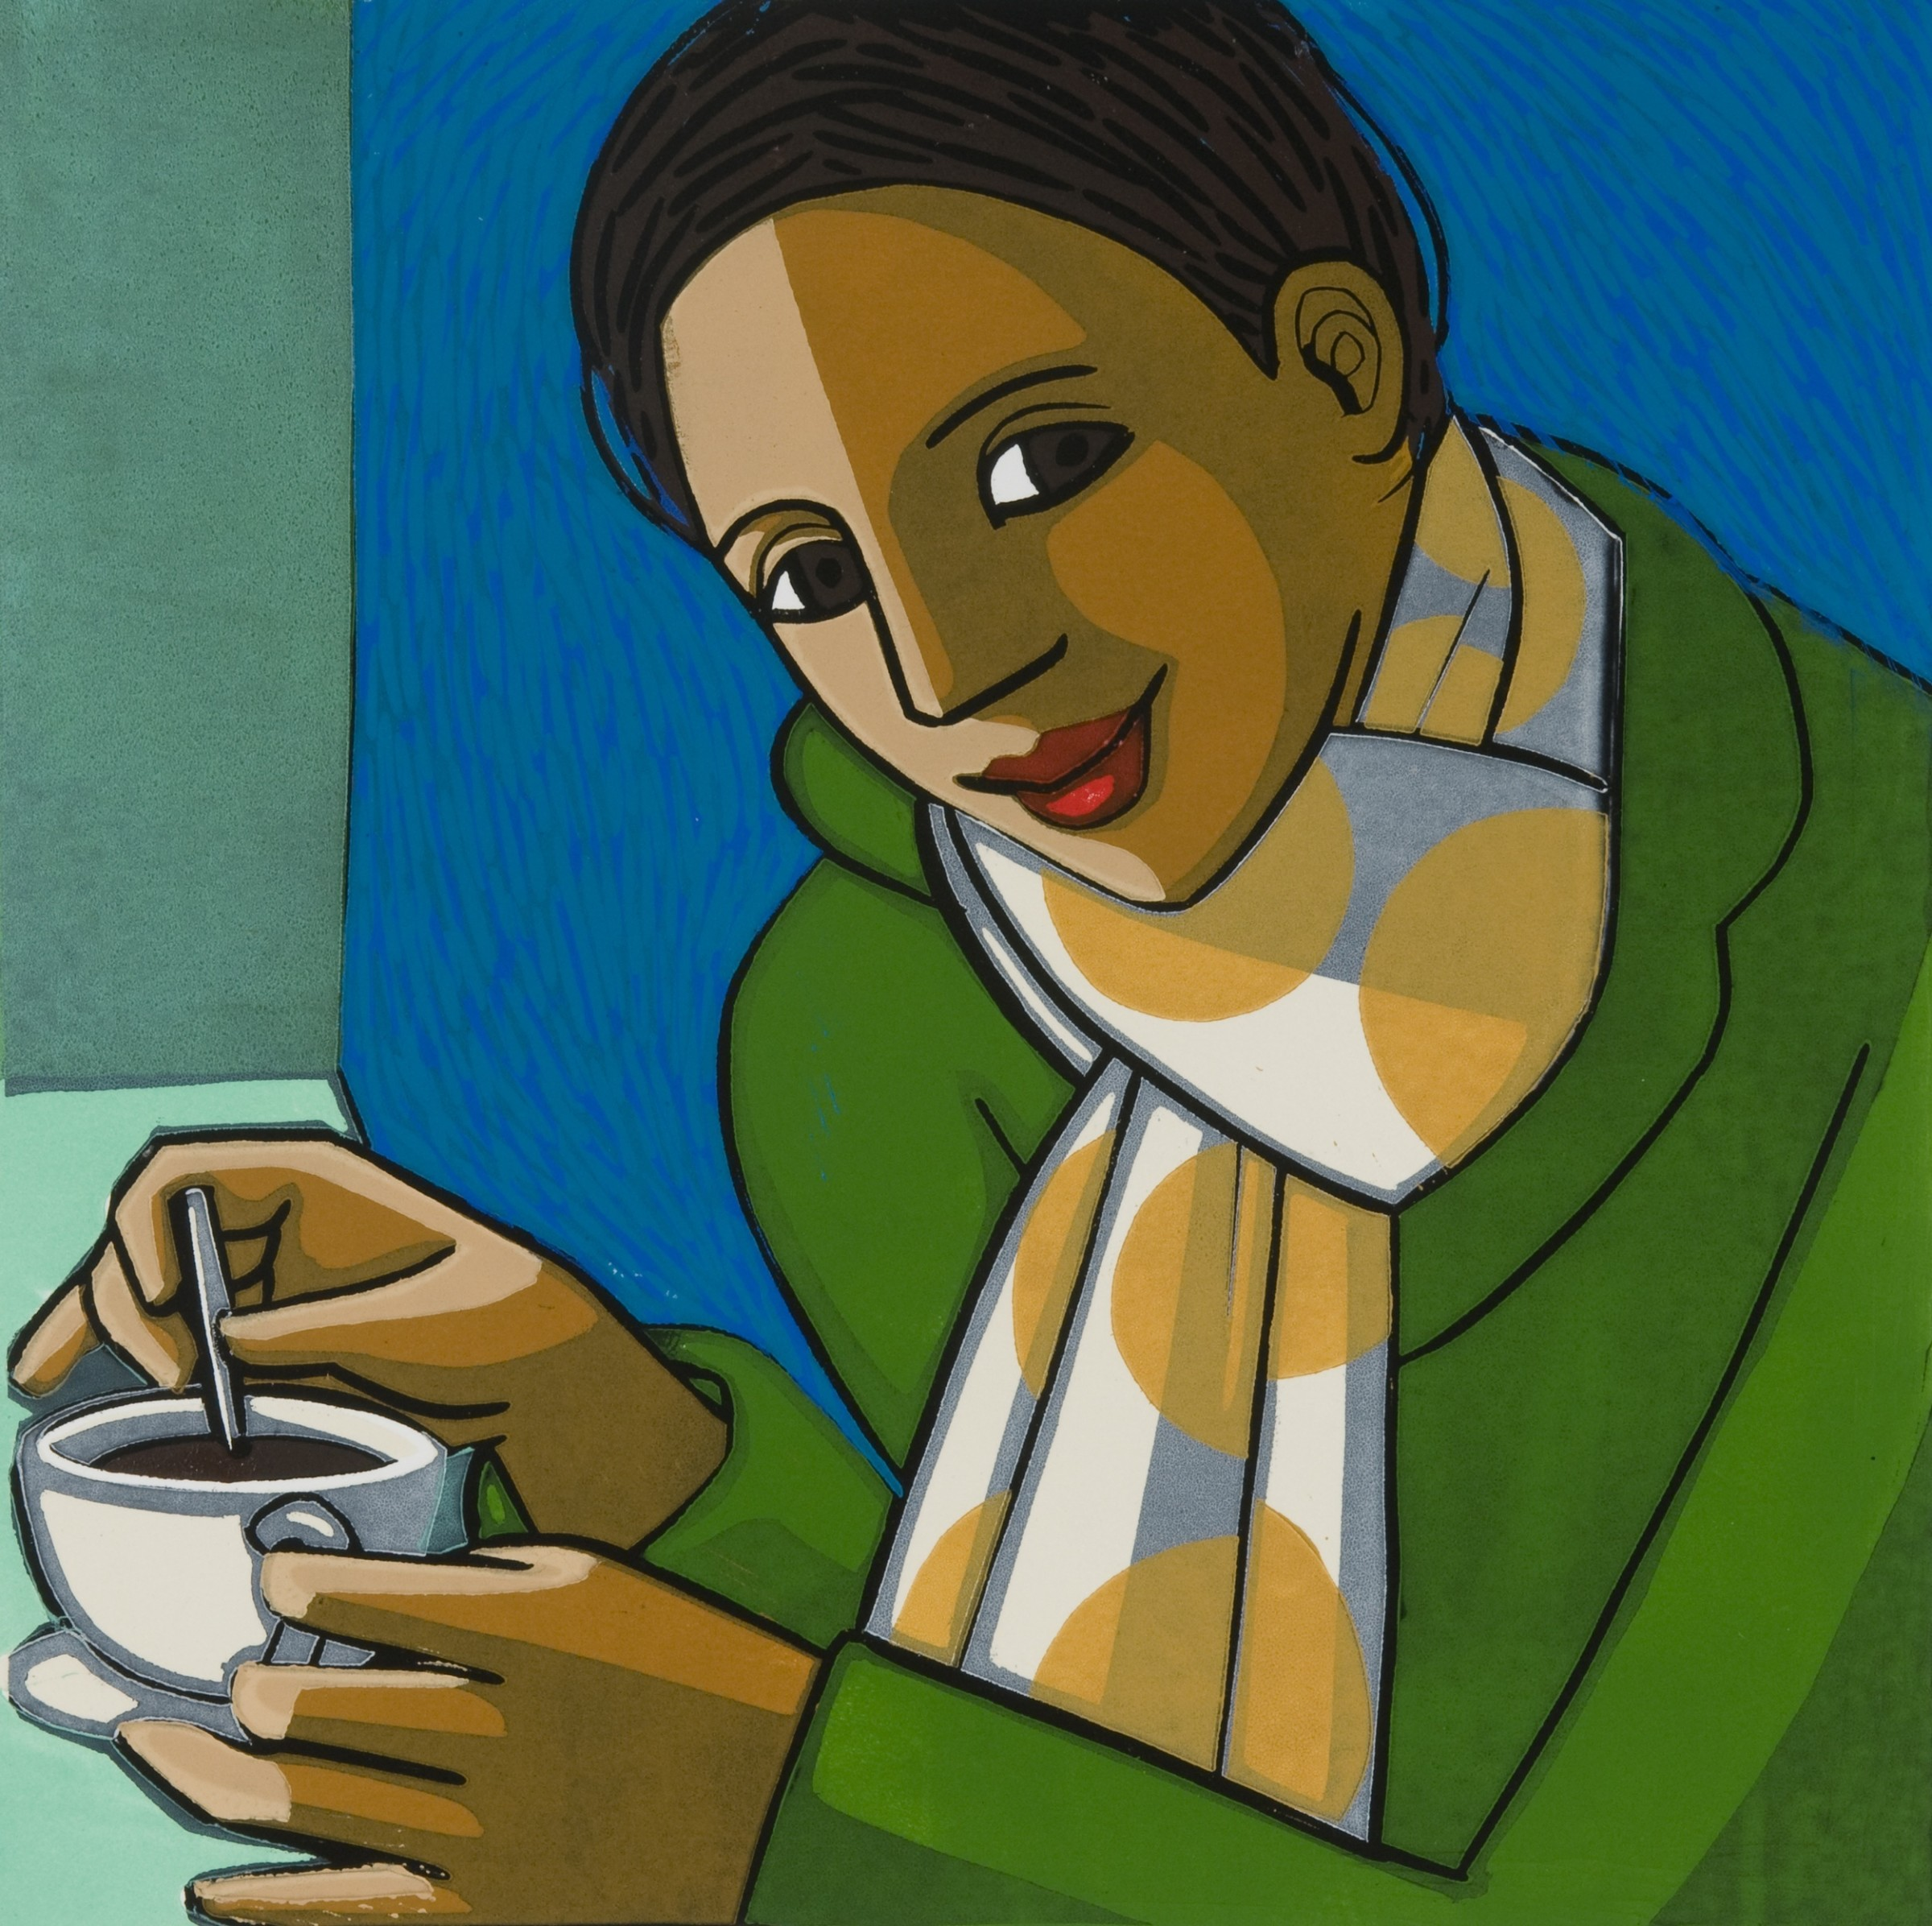 "<span class=""link fancybox-details-link""><a href=""/exhibitions/12/works/image_standalone258/"">View Detail Page</a></span><h2><span>Anita Klein</span></h2><p><span>Hot Chocolate in Italy</span></p>"